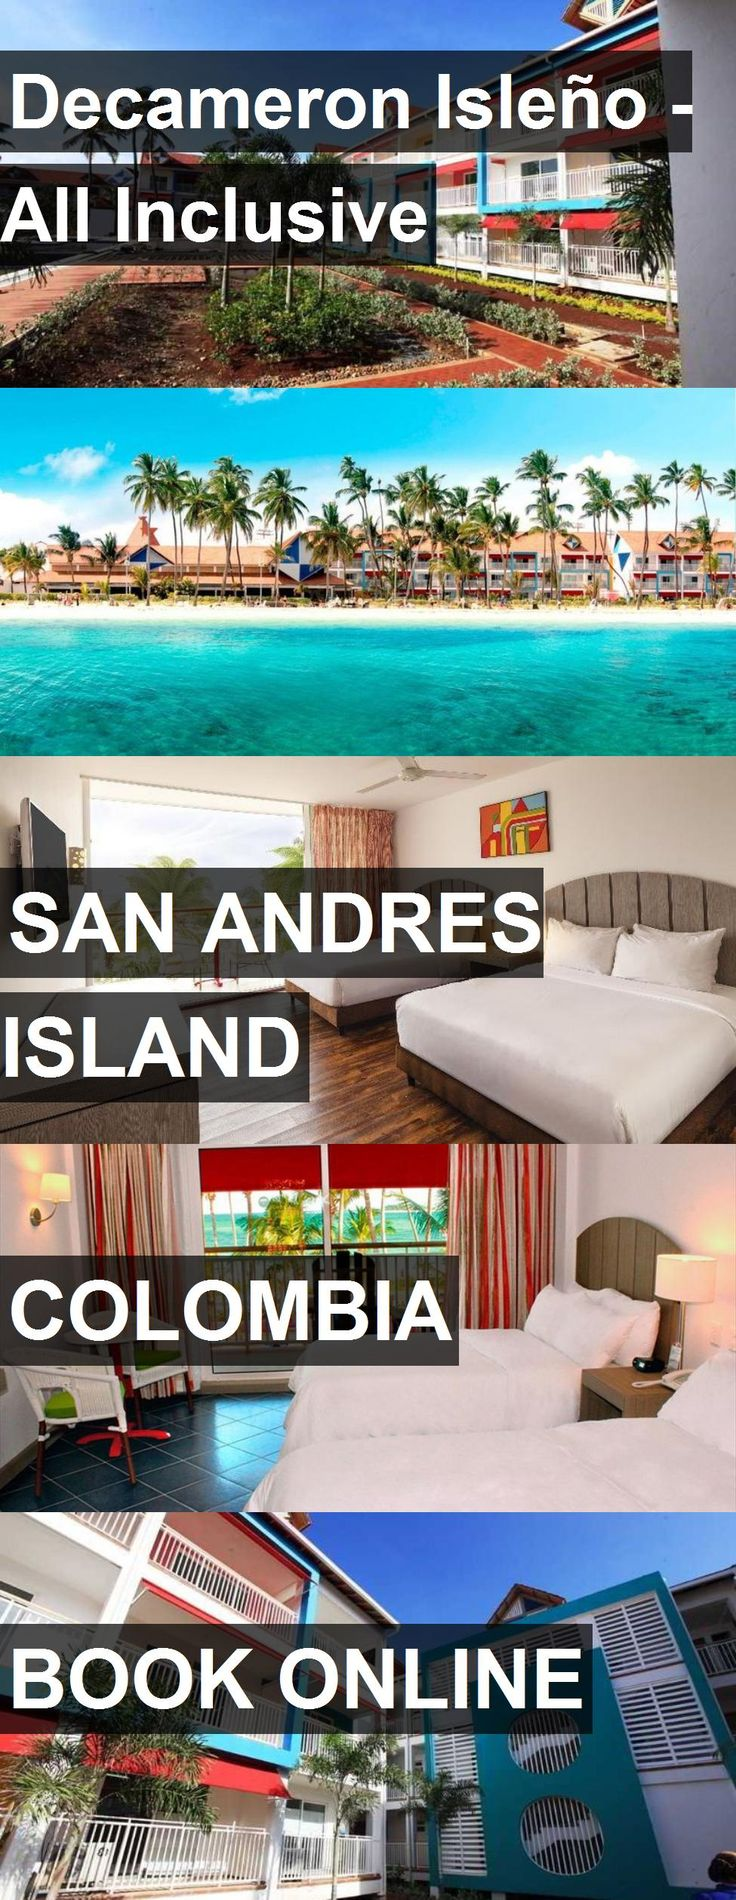 Hotel Decameron Isleño - All Inclusive in San Andres Island, Colombia. For more information, photos, reviews and best prices please follow the link. #Colombia #SanAndresIsland #travel #vacation #hotel